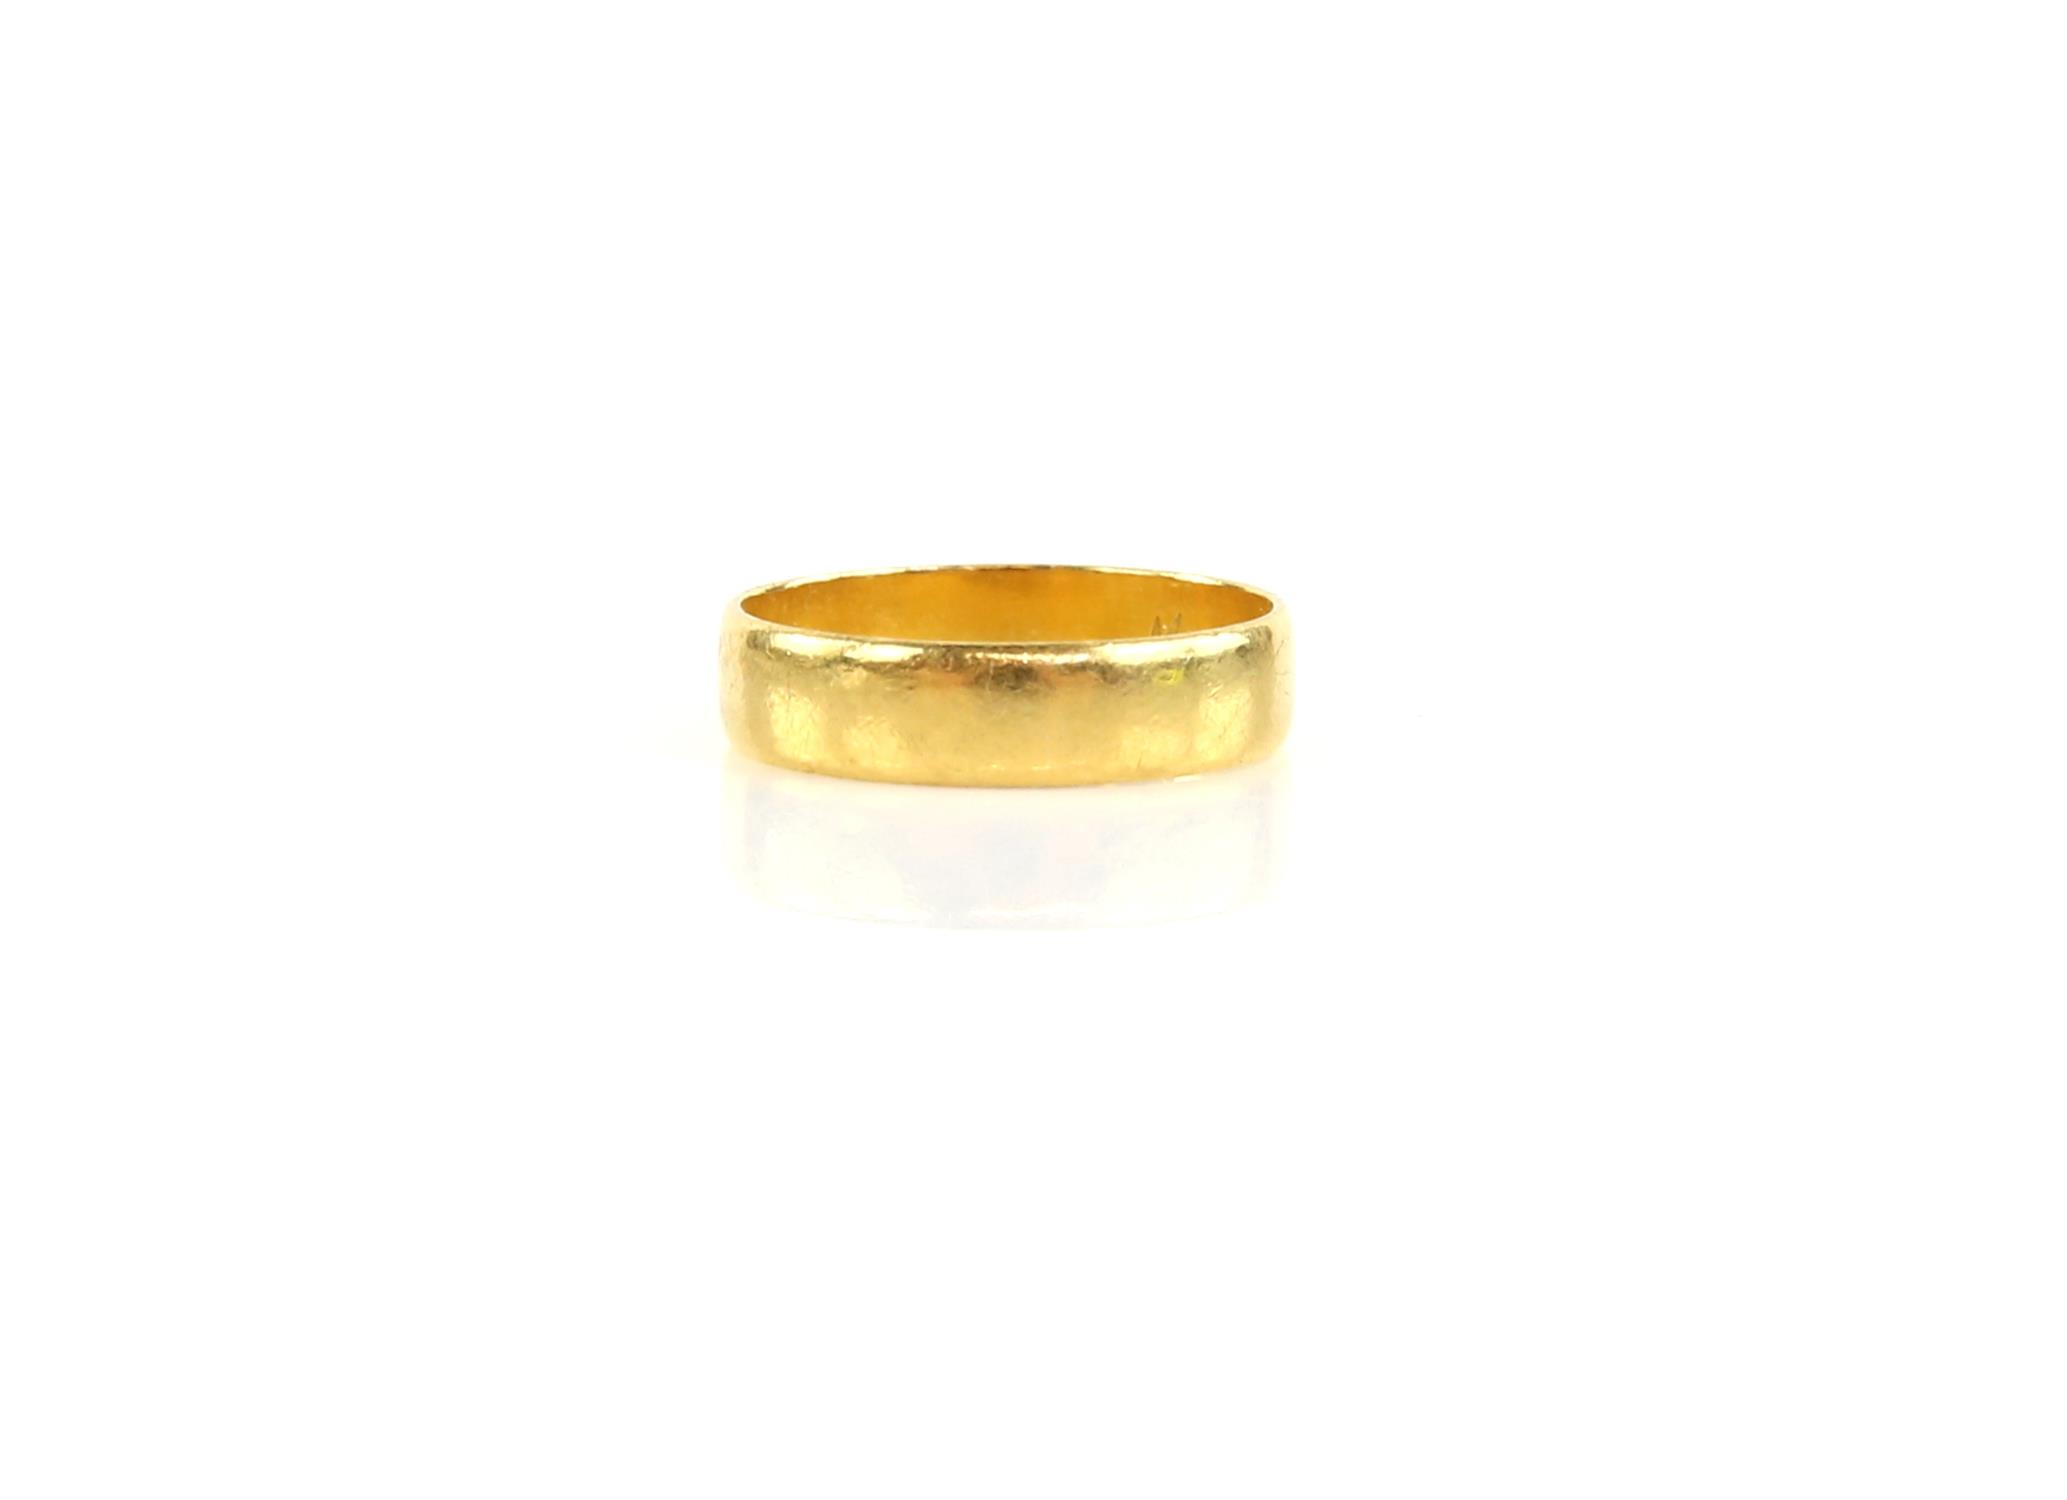 1960's court wedding band in 22 ct yellow gold, hallmarked London 1963, ring size N and a delicate - Image 2 of 3